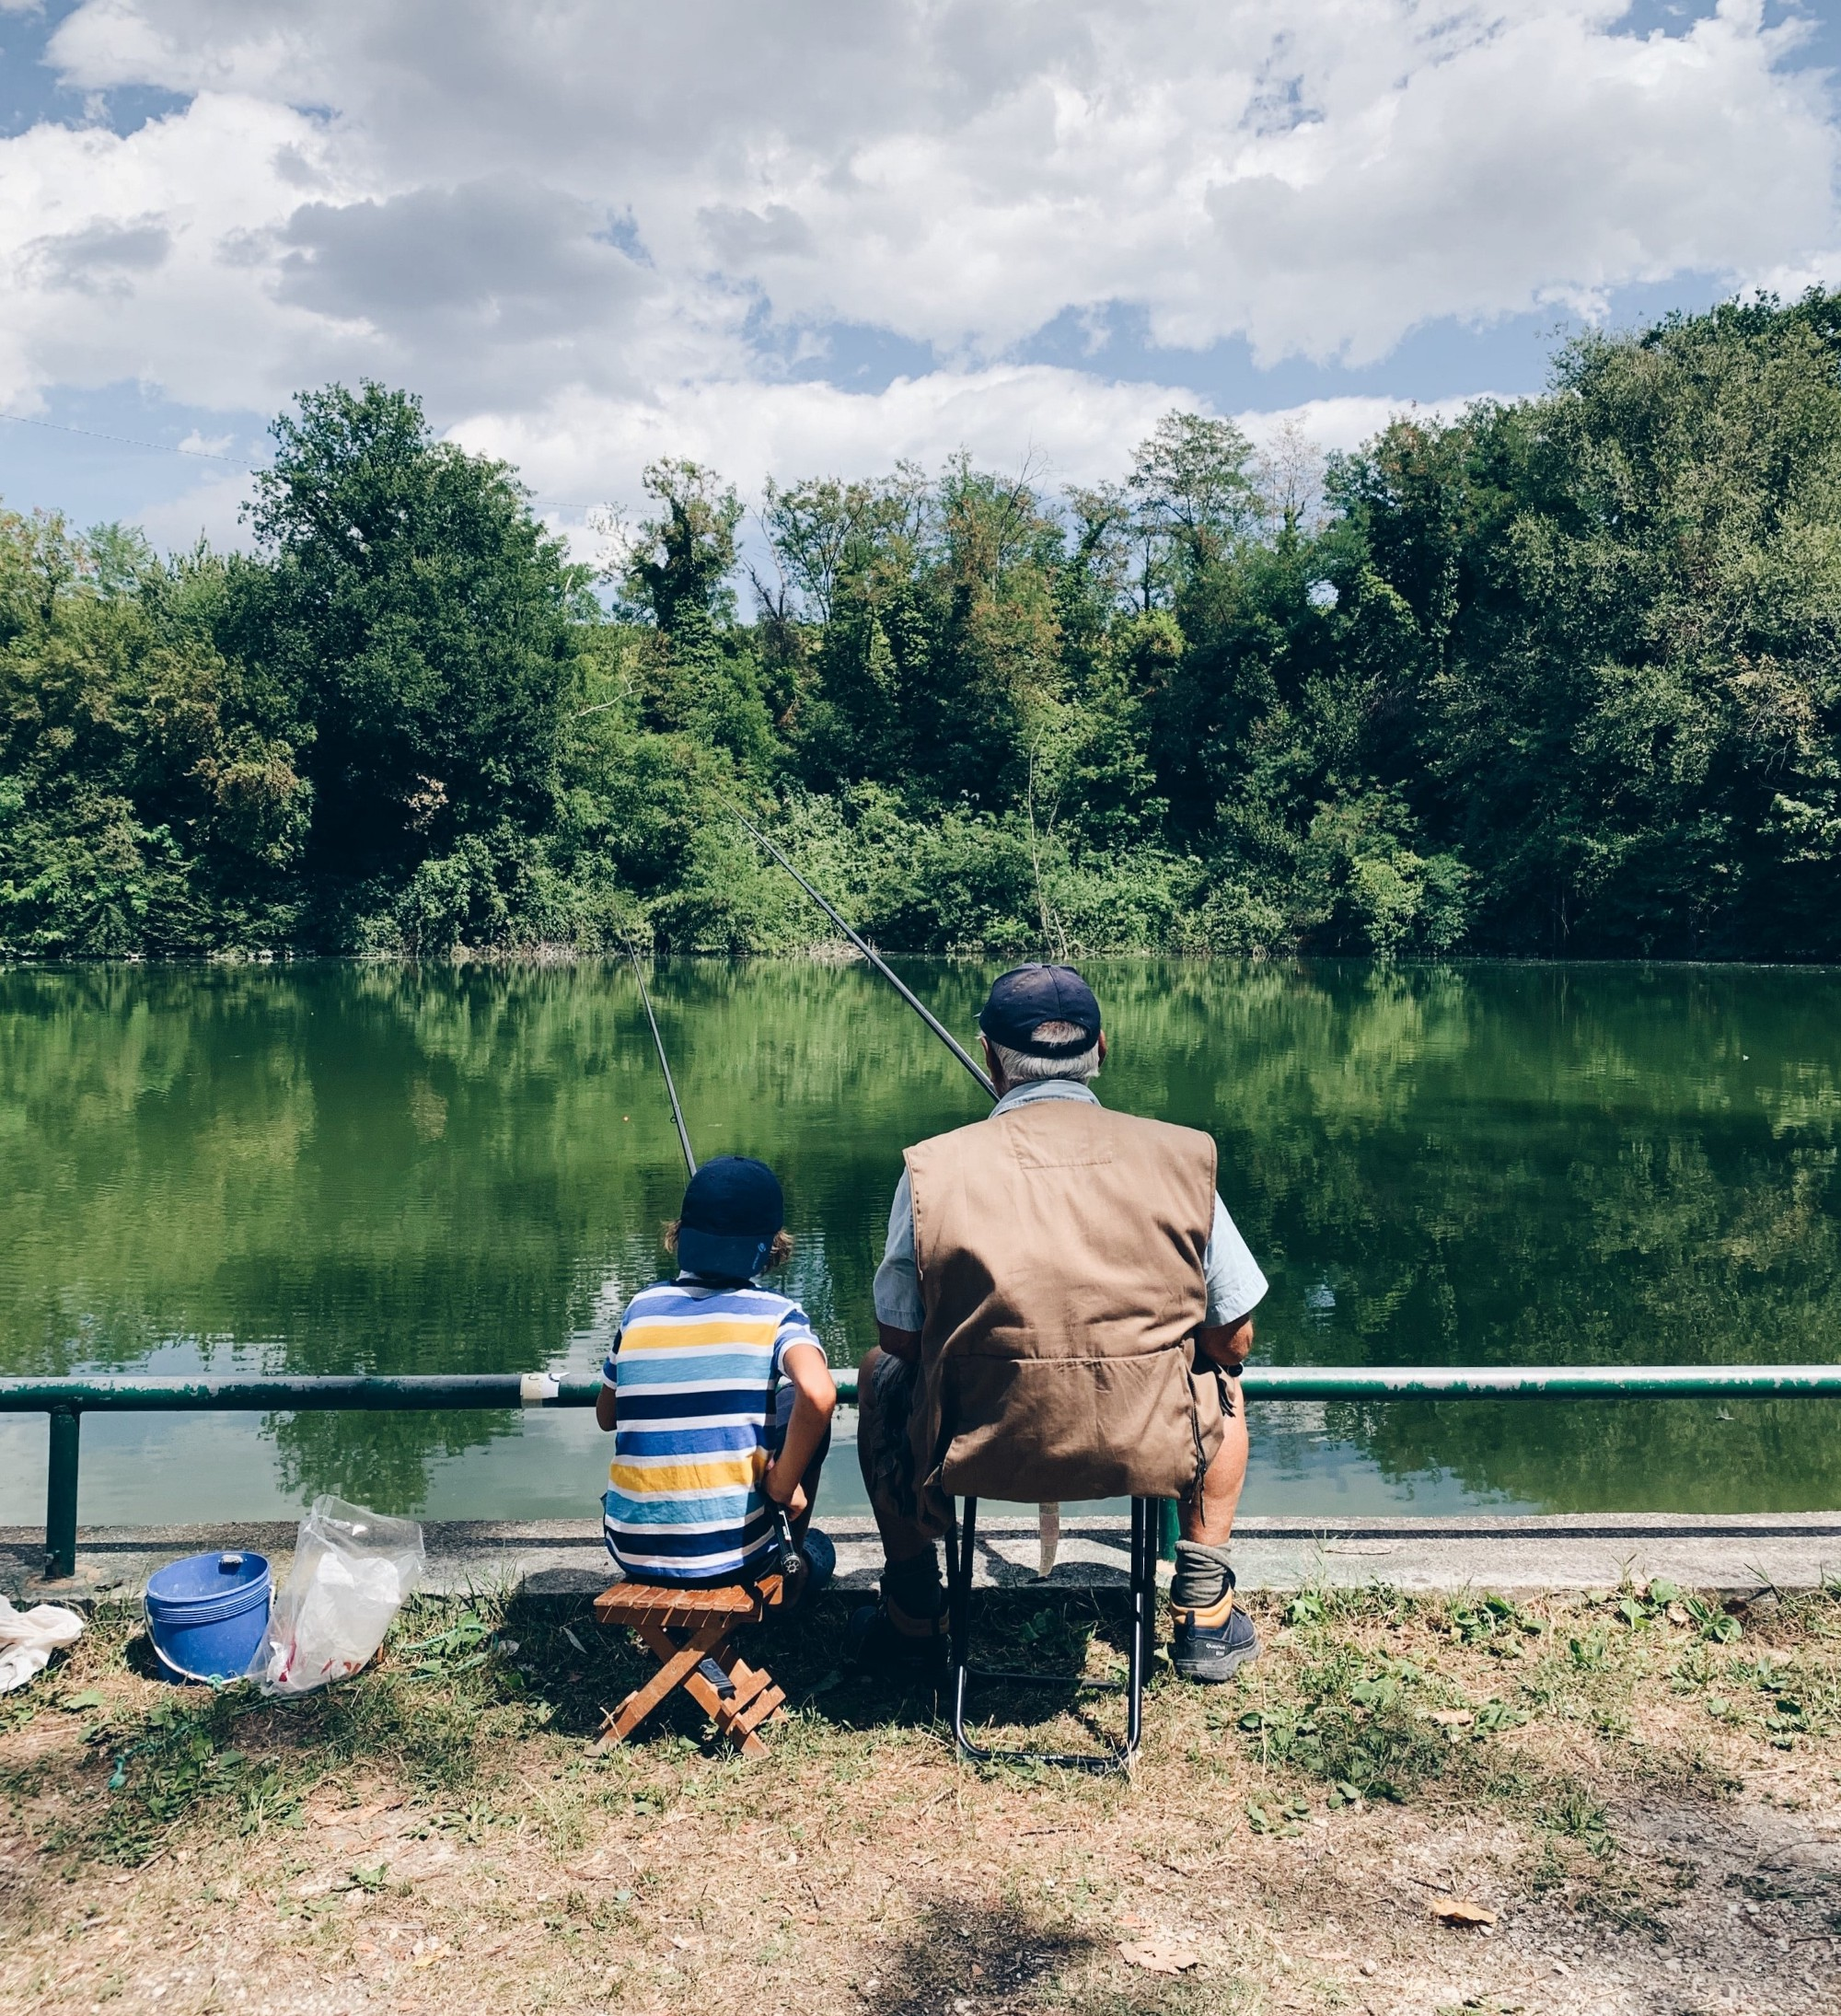 An older man sits fishing with a young child.